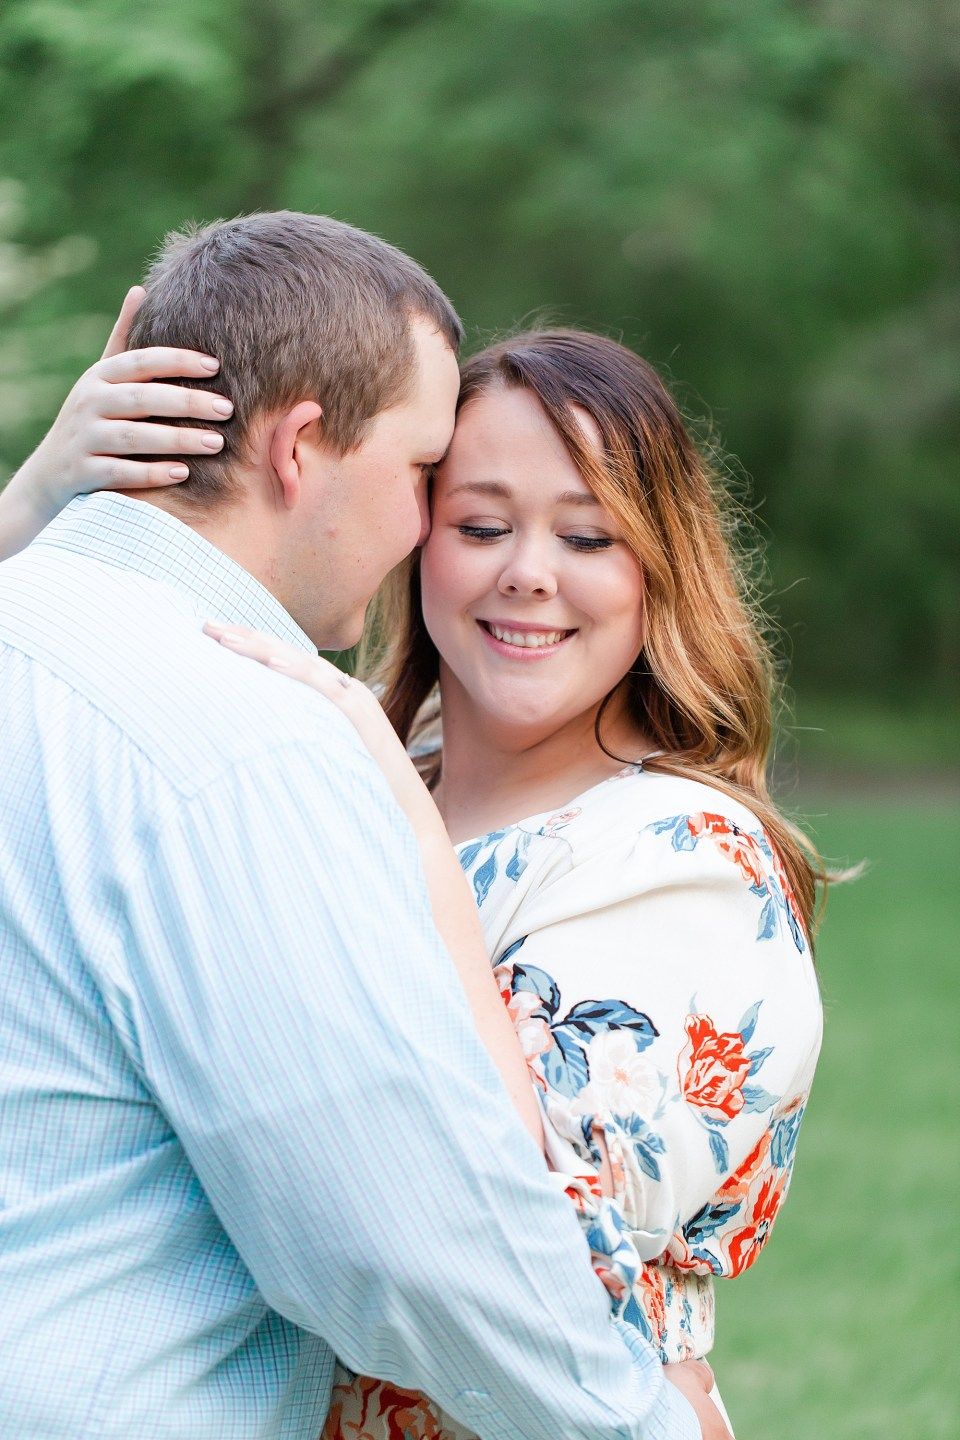 Allerton Park Spring Engagement Session in Monticello, Illinois by Karen Shoufler Photography